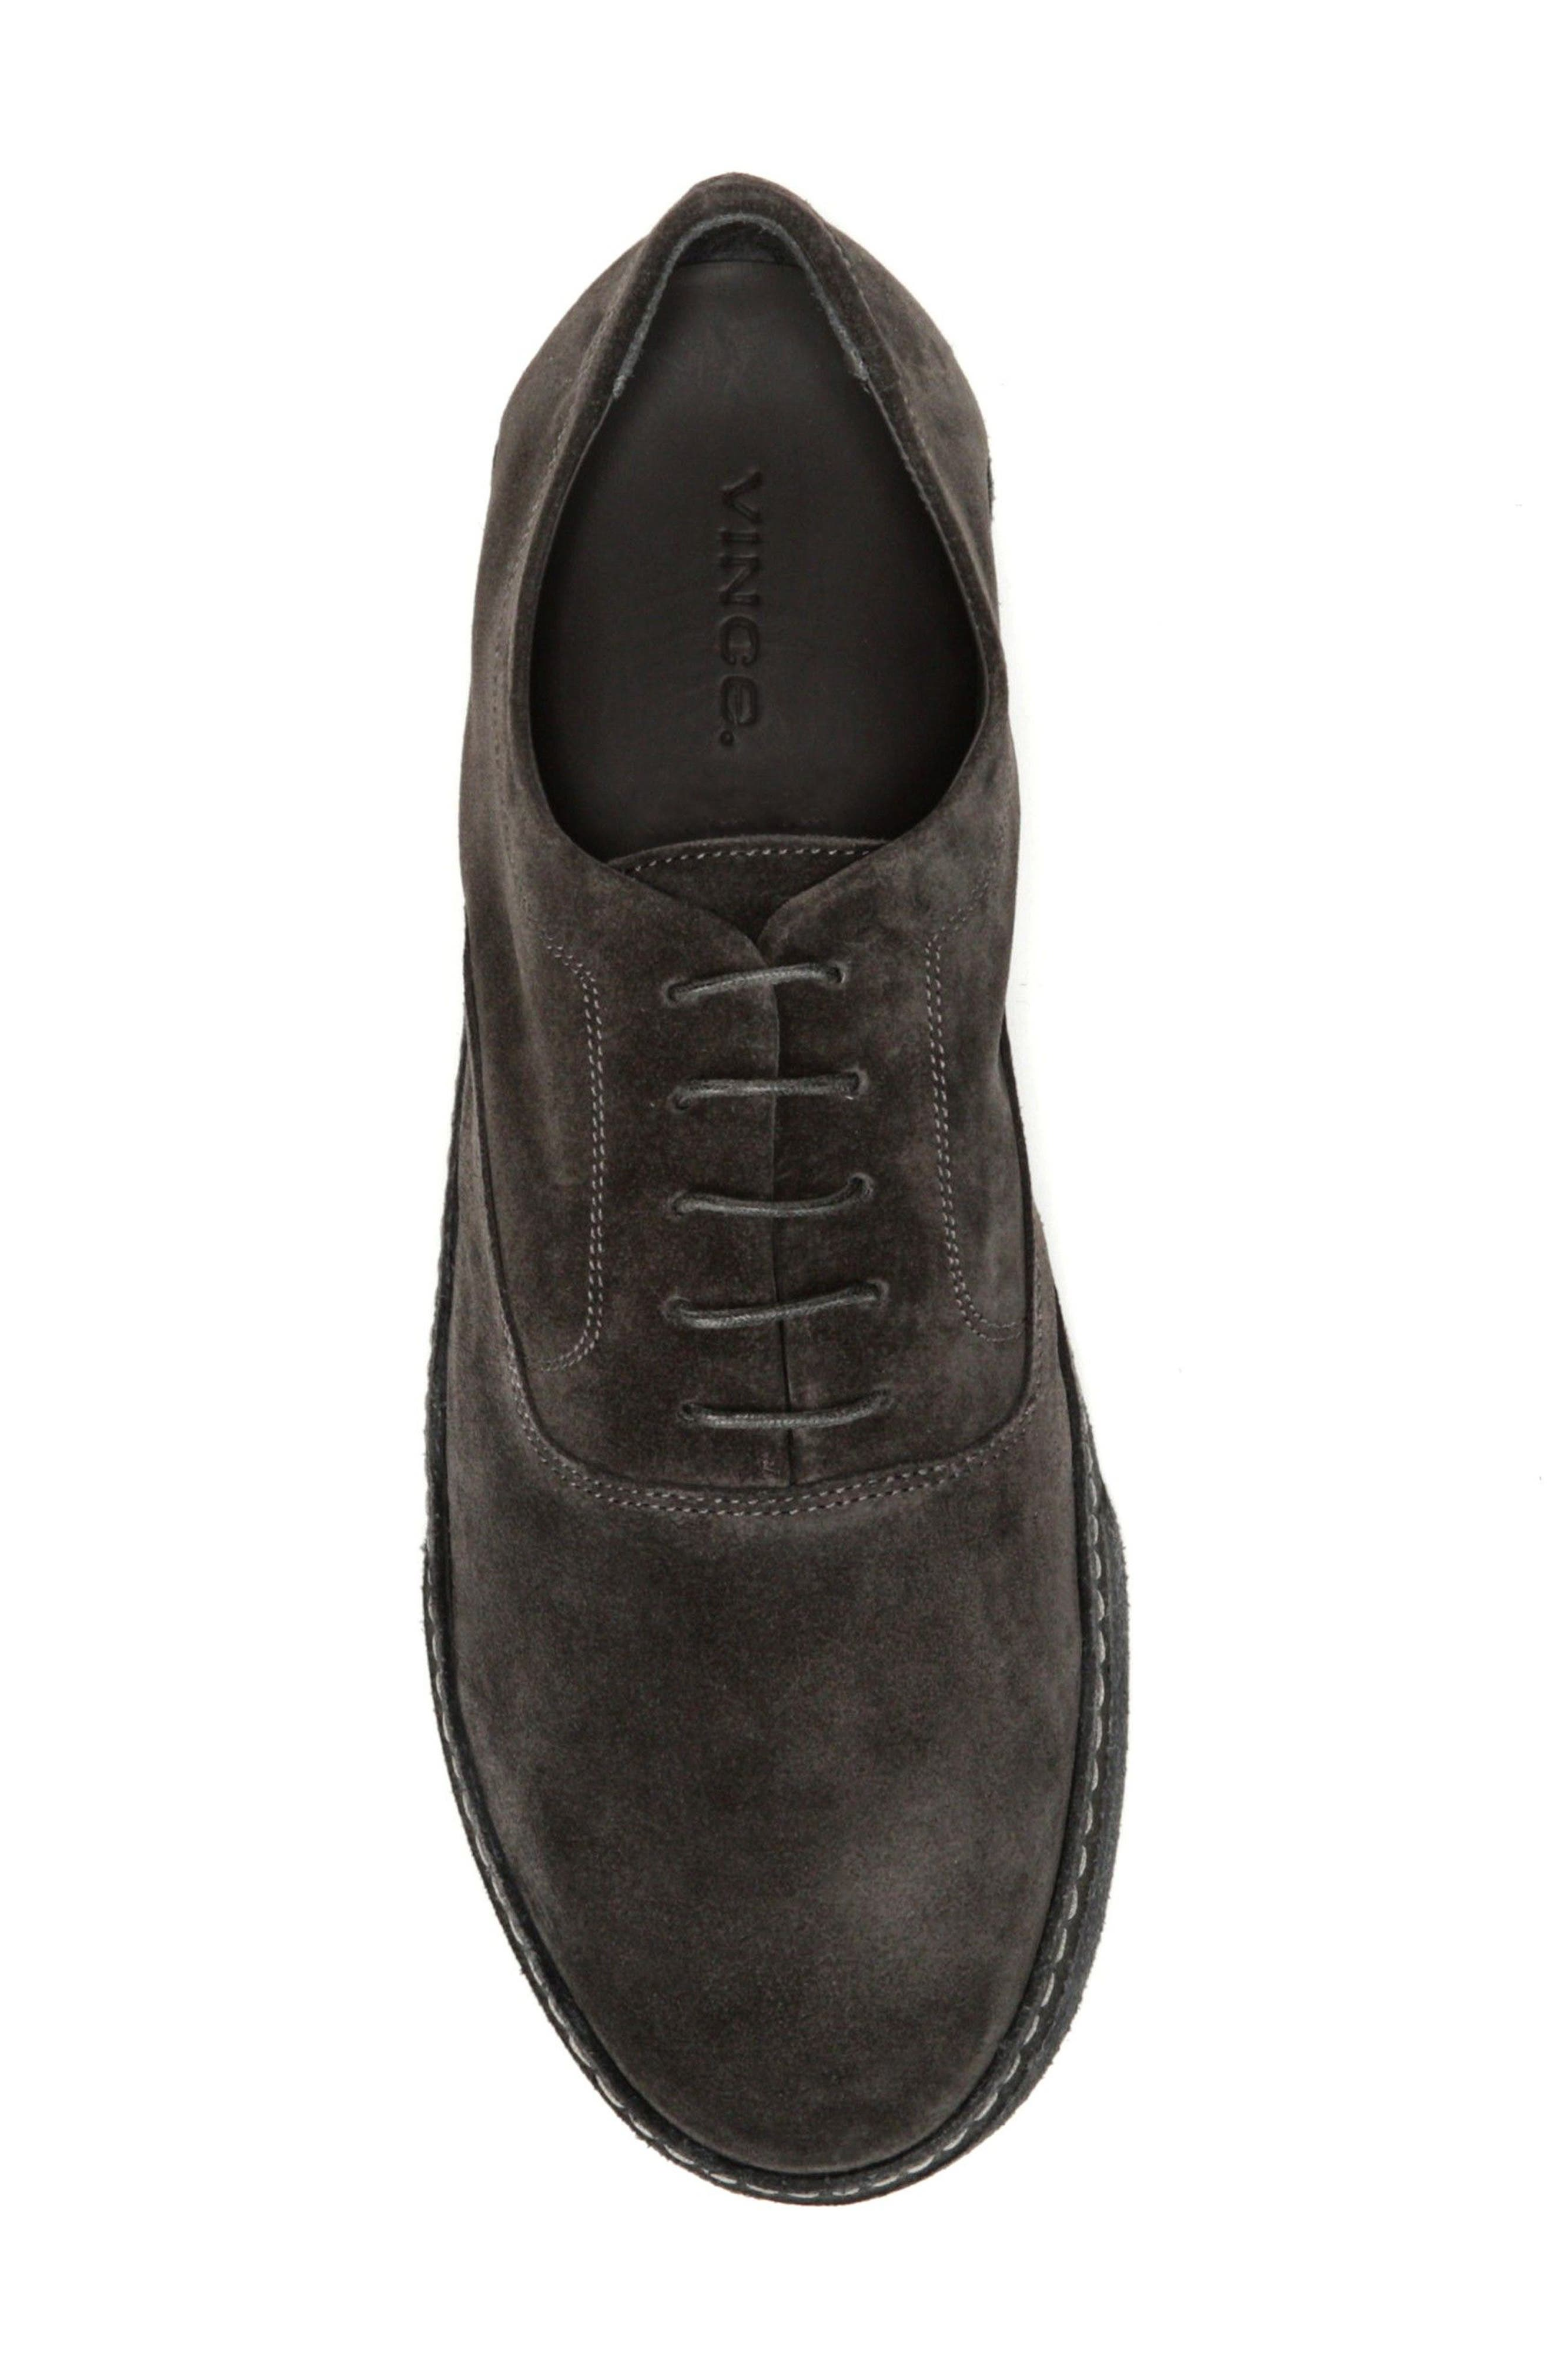 Norris Plain Toe Oxford,                             Alternate thumbnail 5, color,                             021